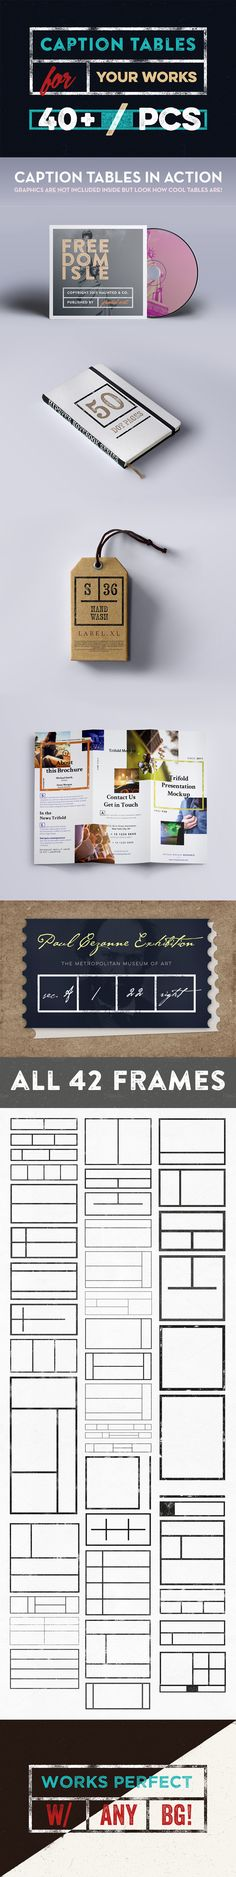 http://crtv.mk/g07Yq Add pressed caption badges to your designs quickly! Available on @creativemarket